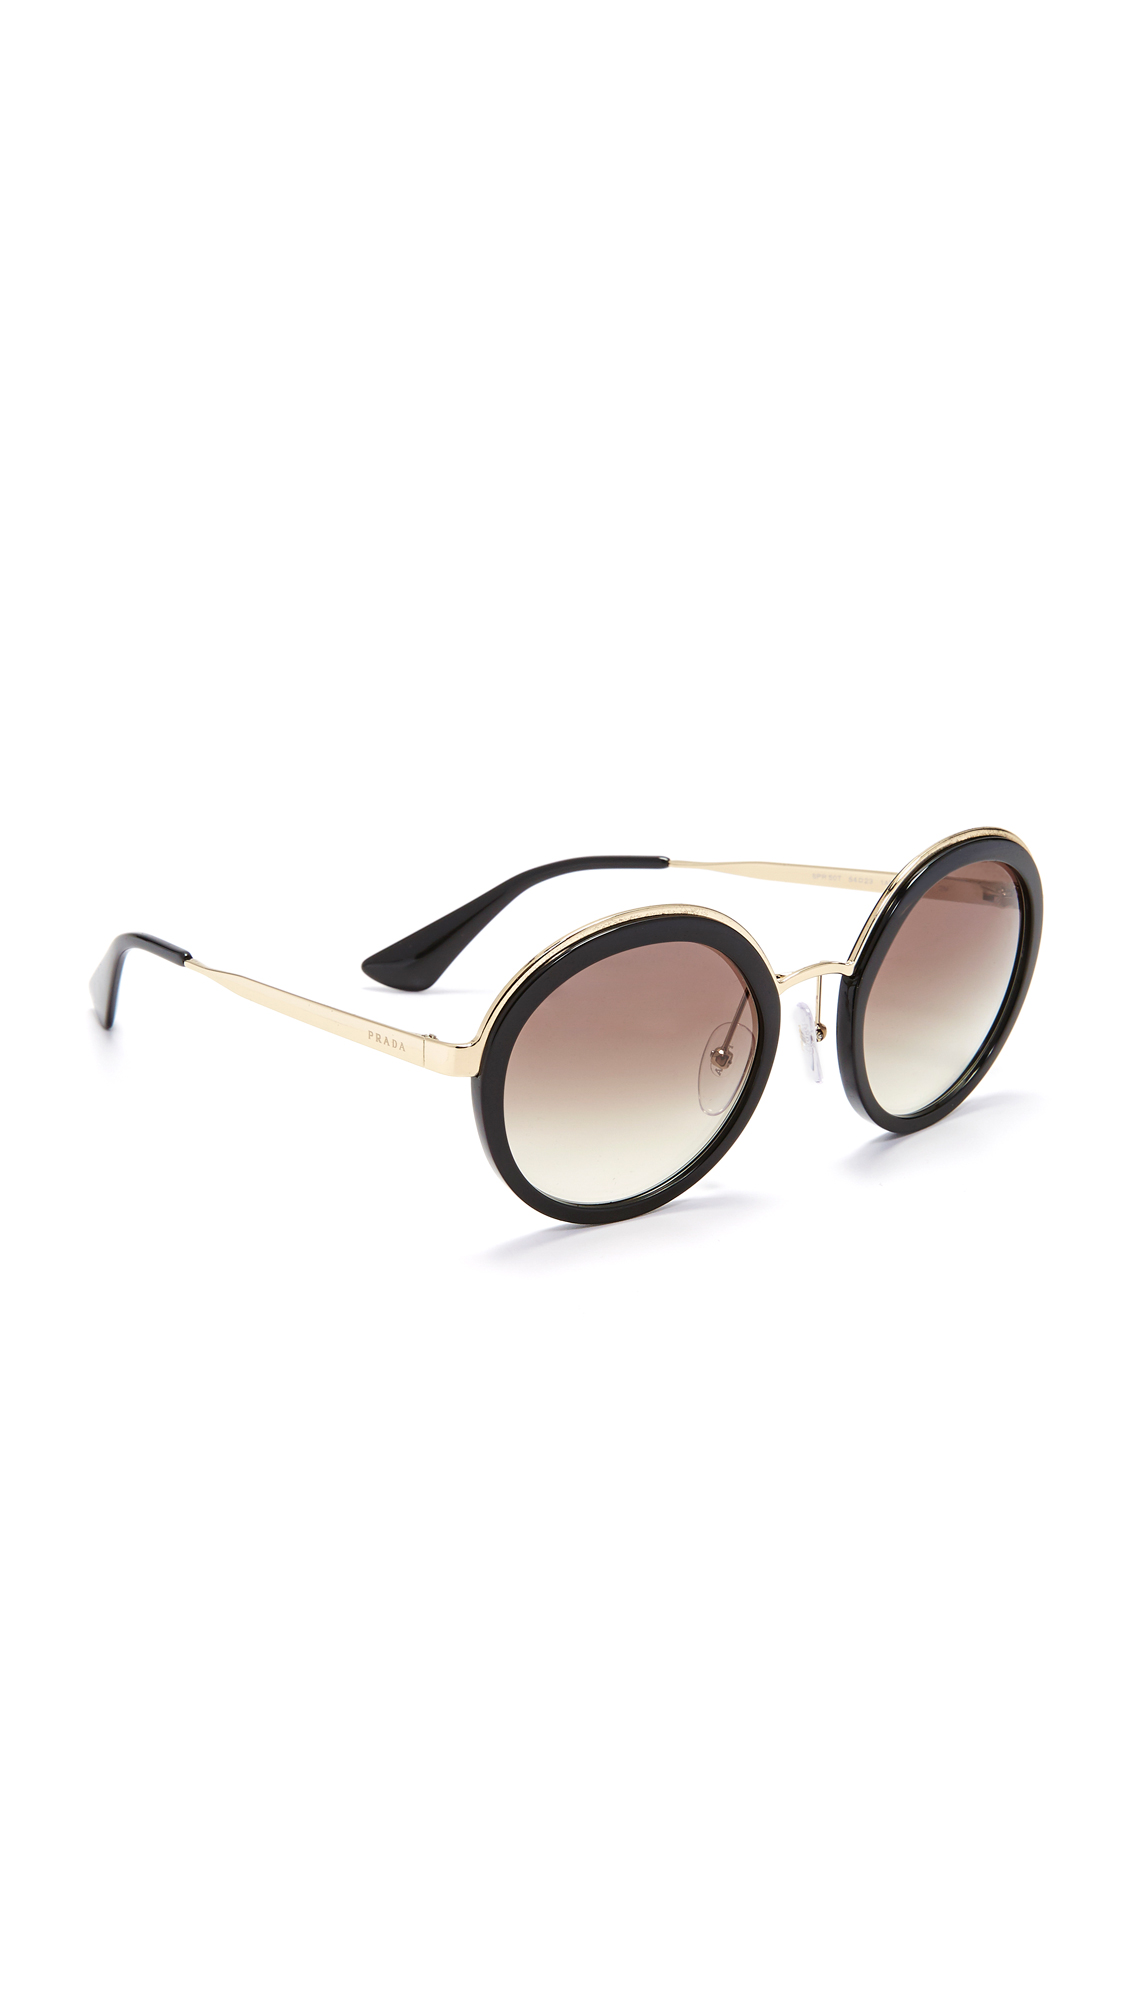 Prada Round Sunglasses - Black/Grey at Shopbop